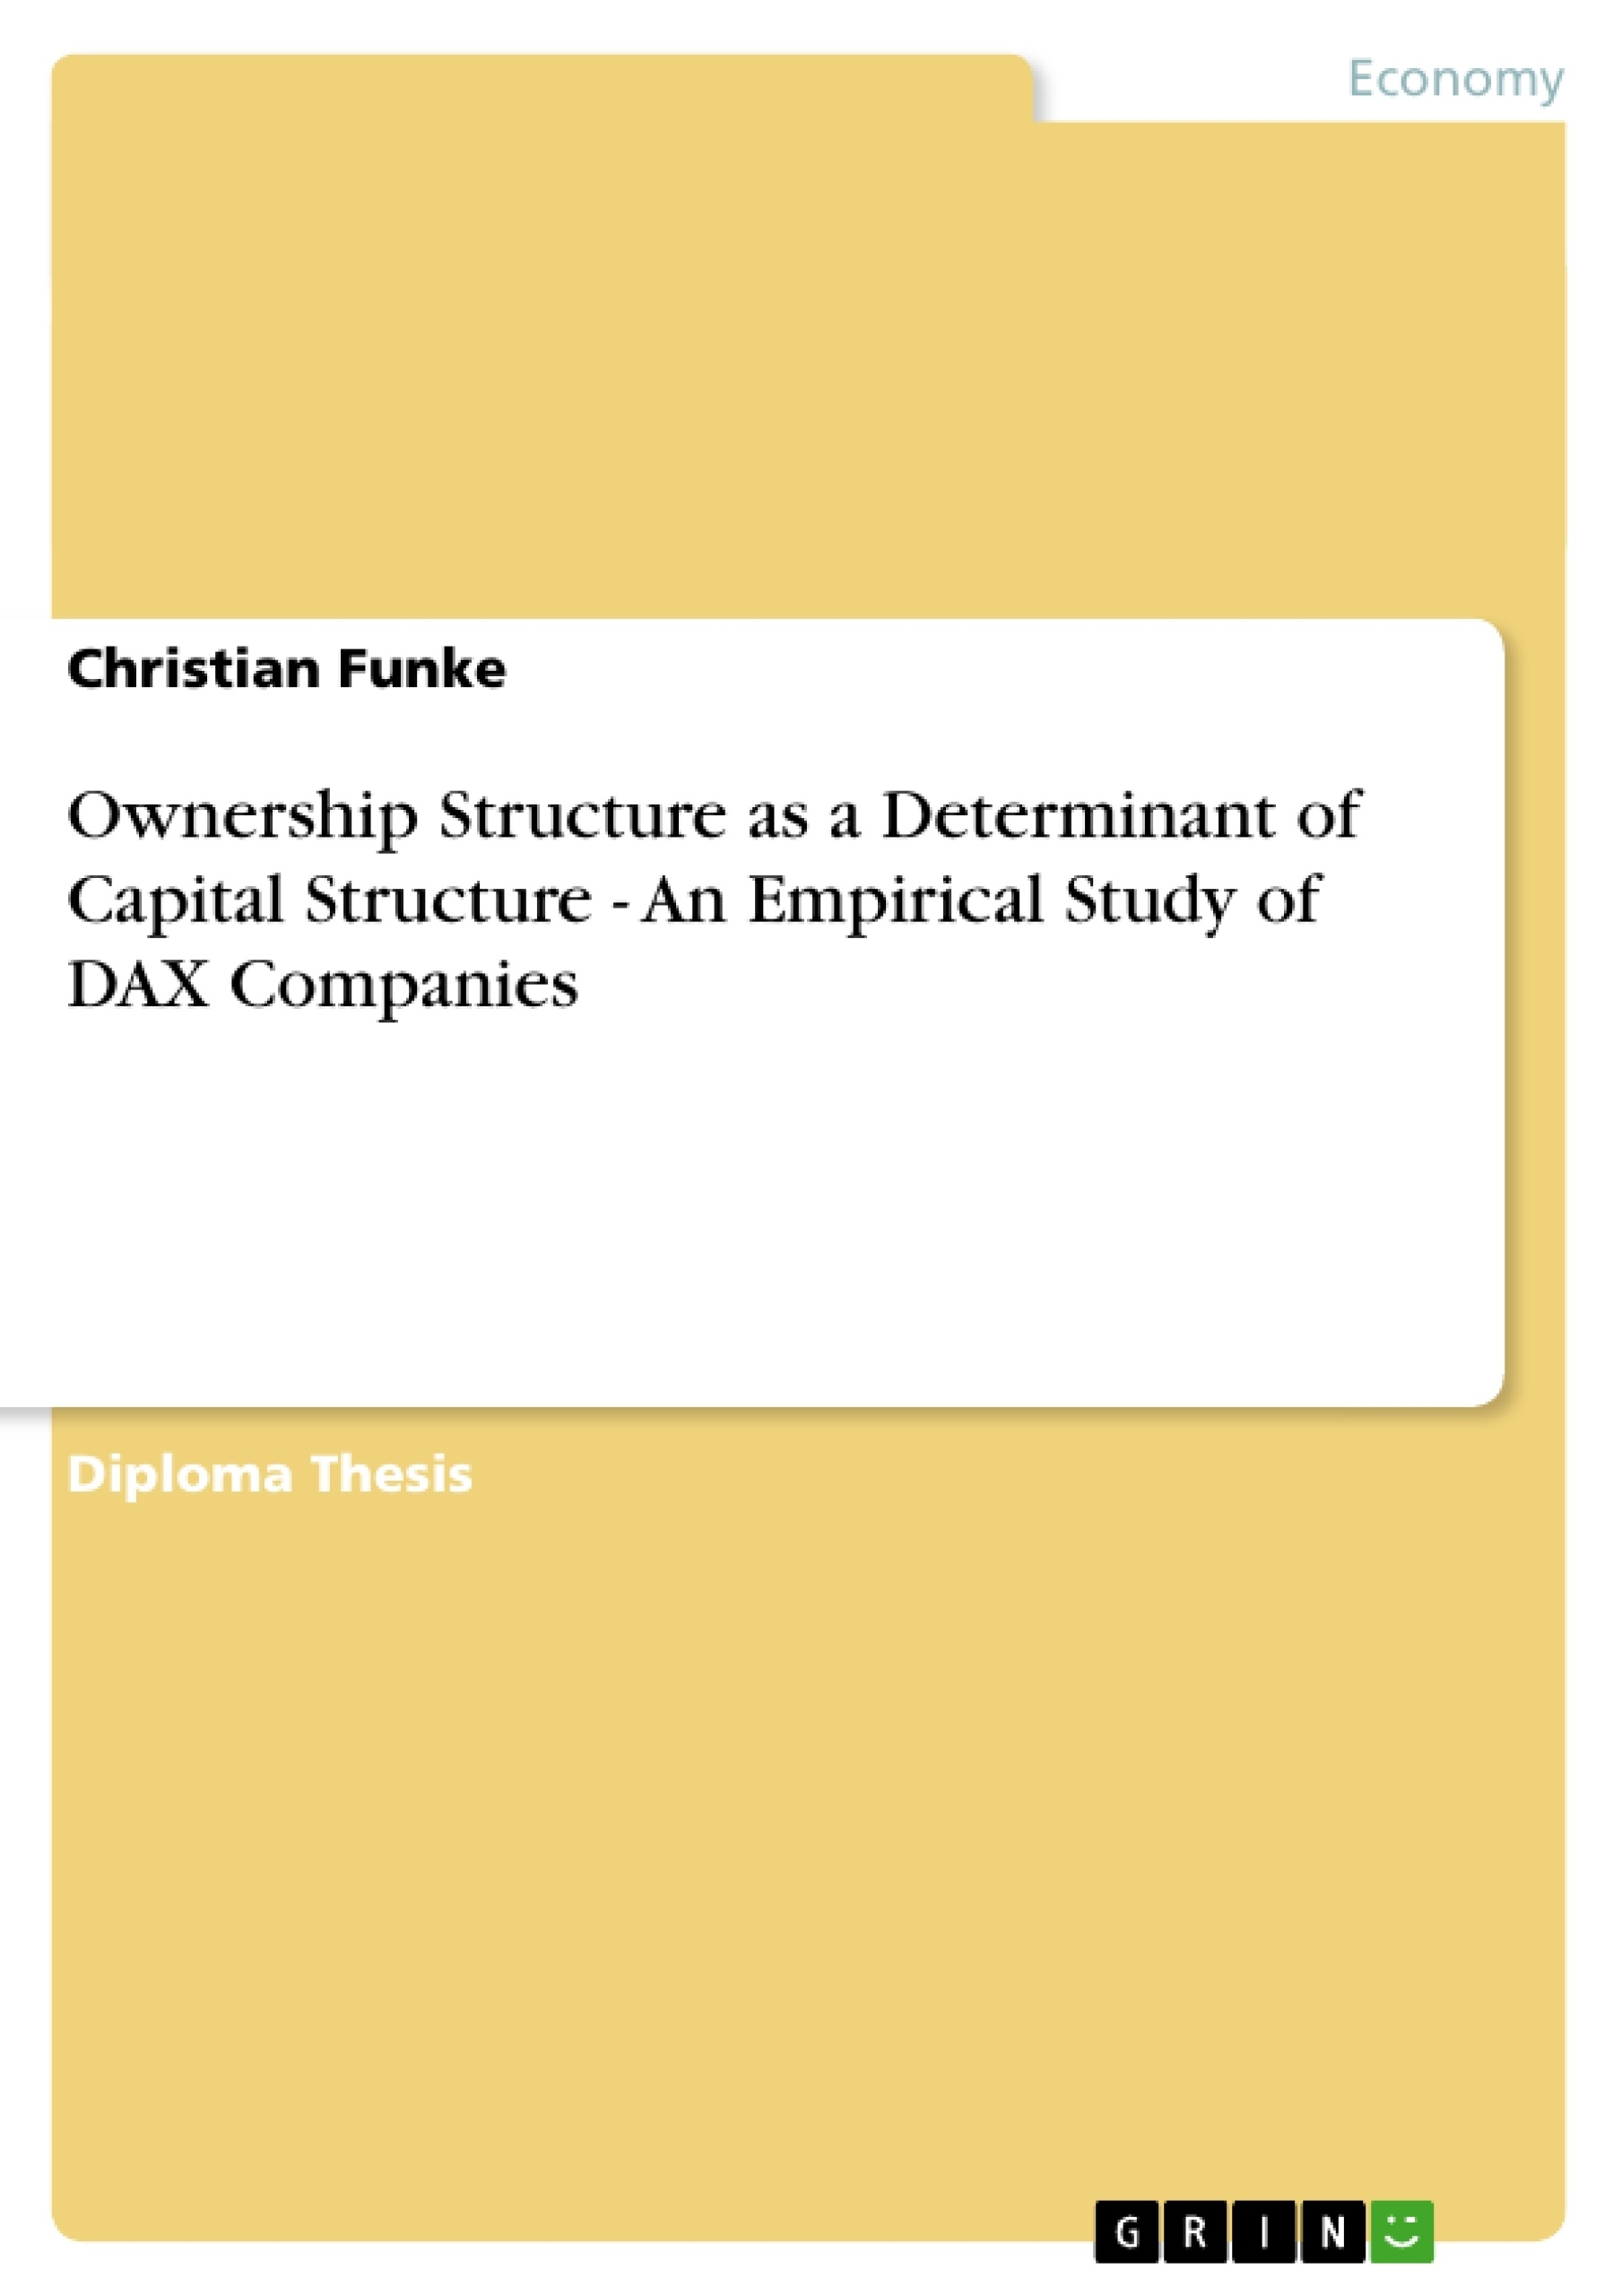 Title: Ownership Structure as a Determinant of Capital Structure - An Empirical Study of DAX Companies